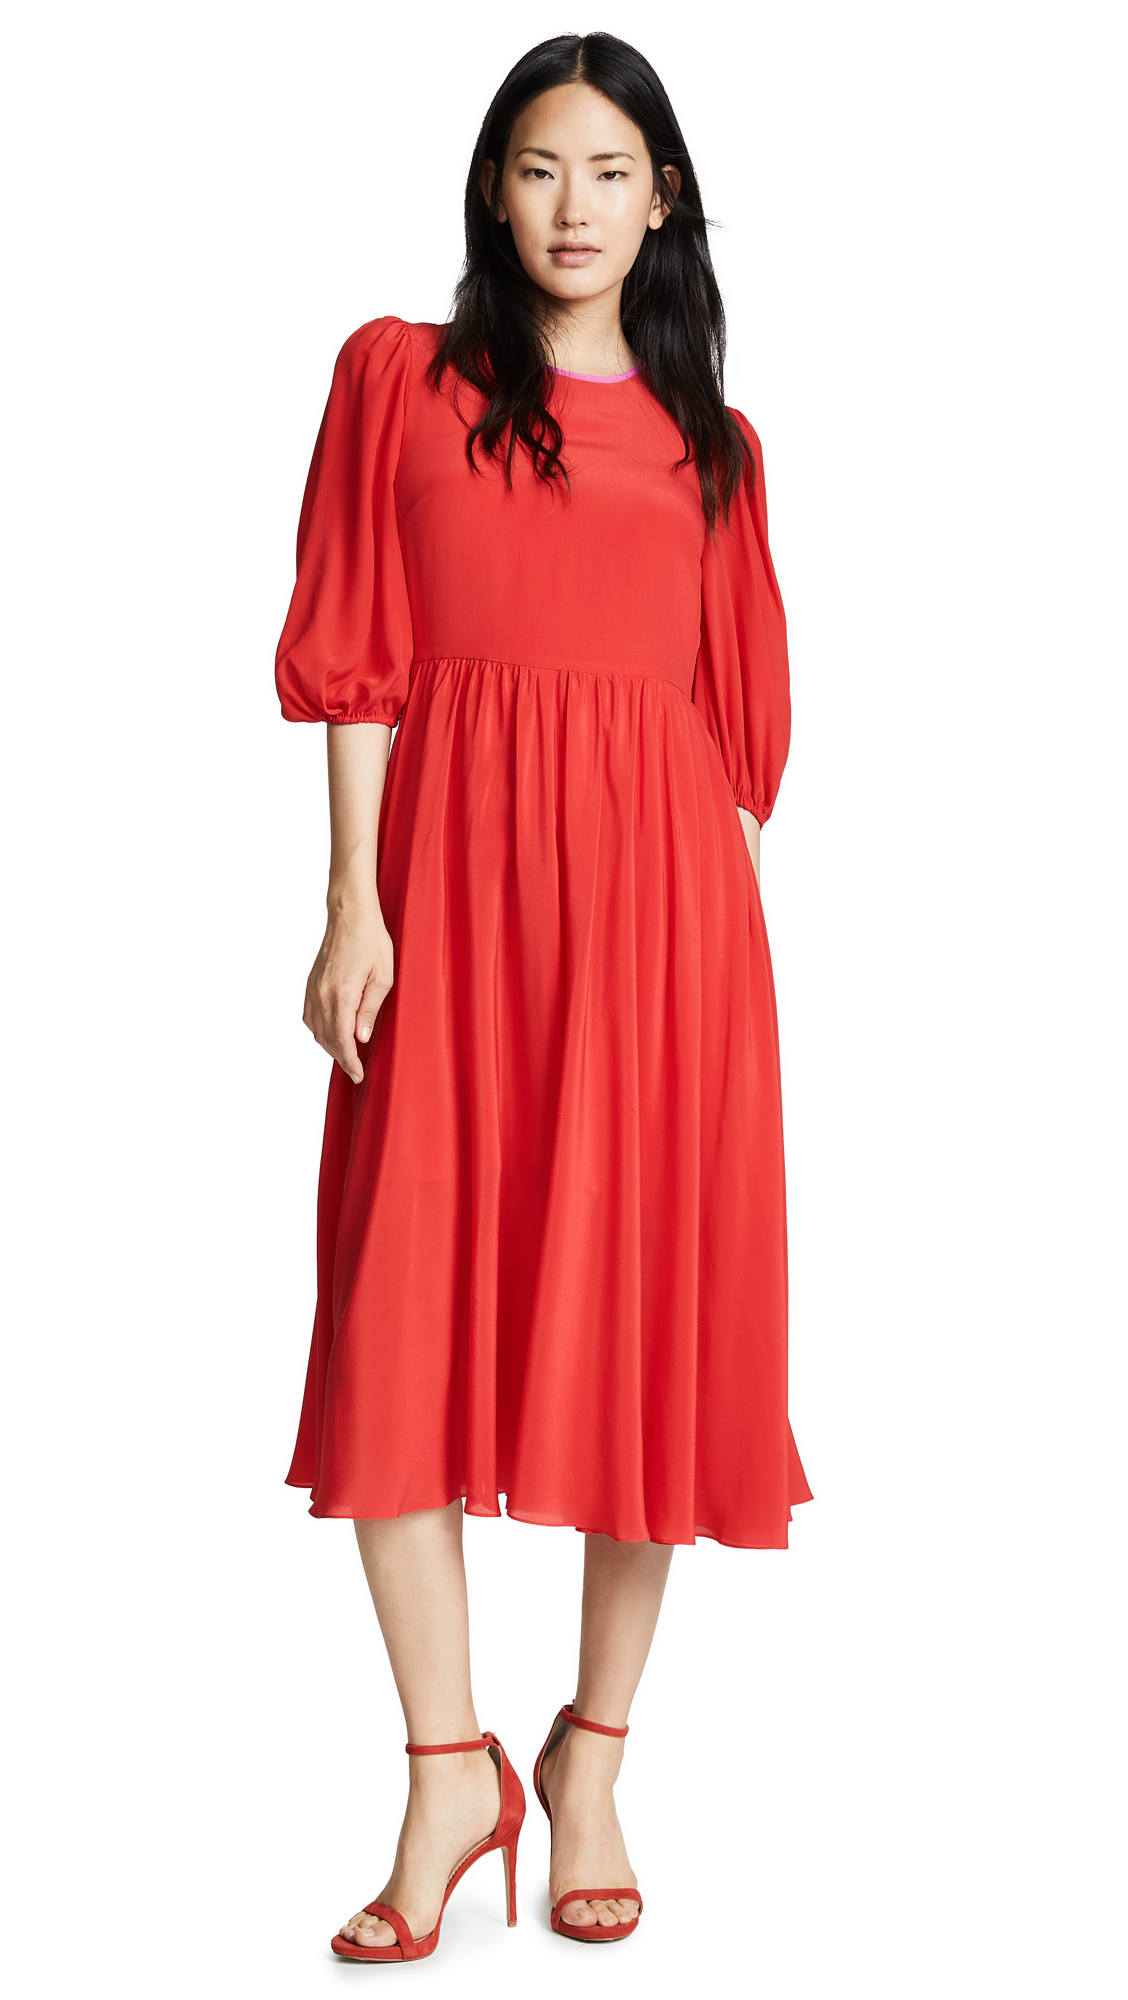 ANNA OCTOBER Puff Sleeve Dress in Red